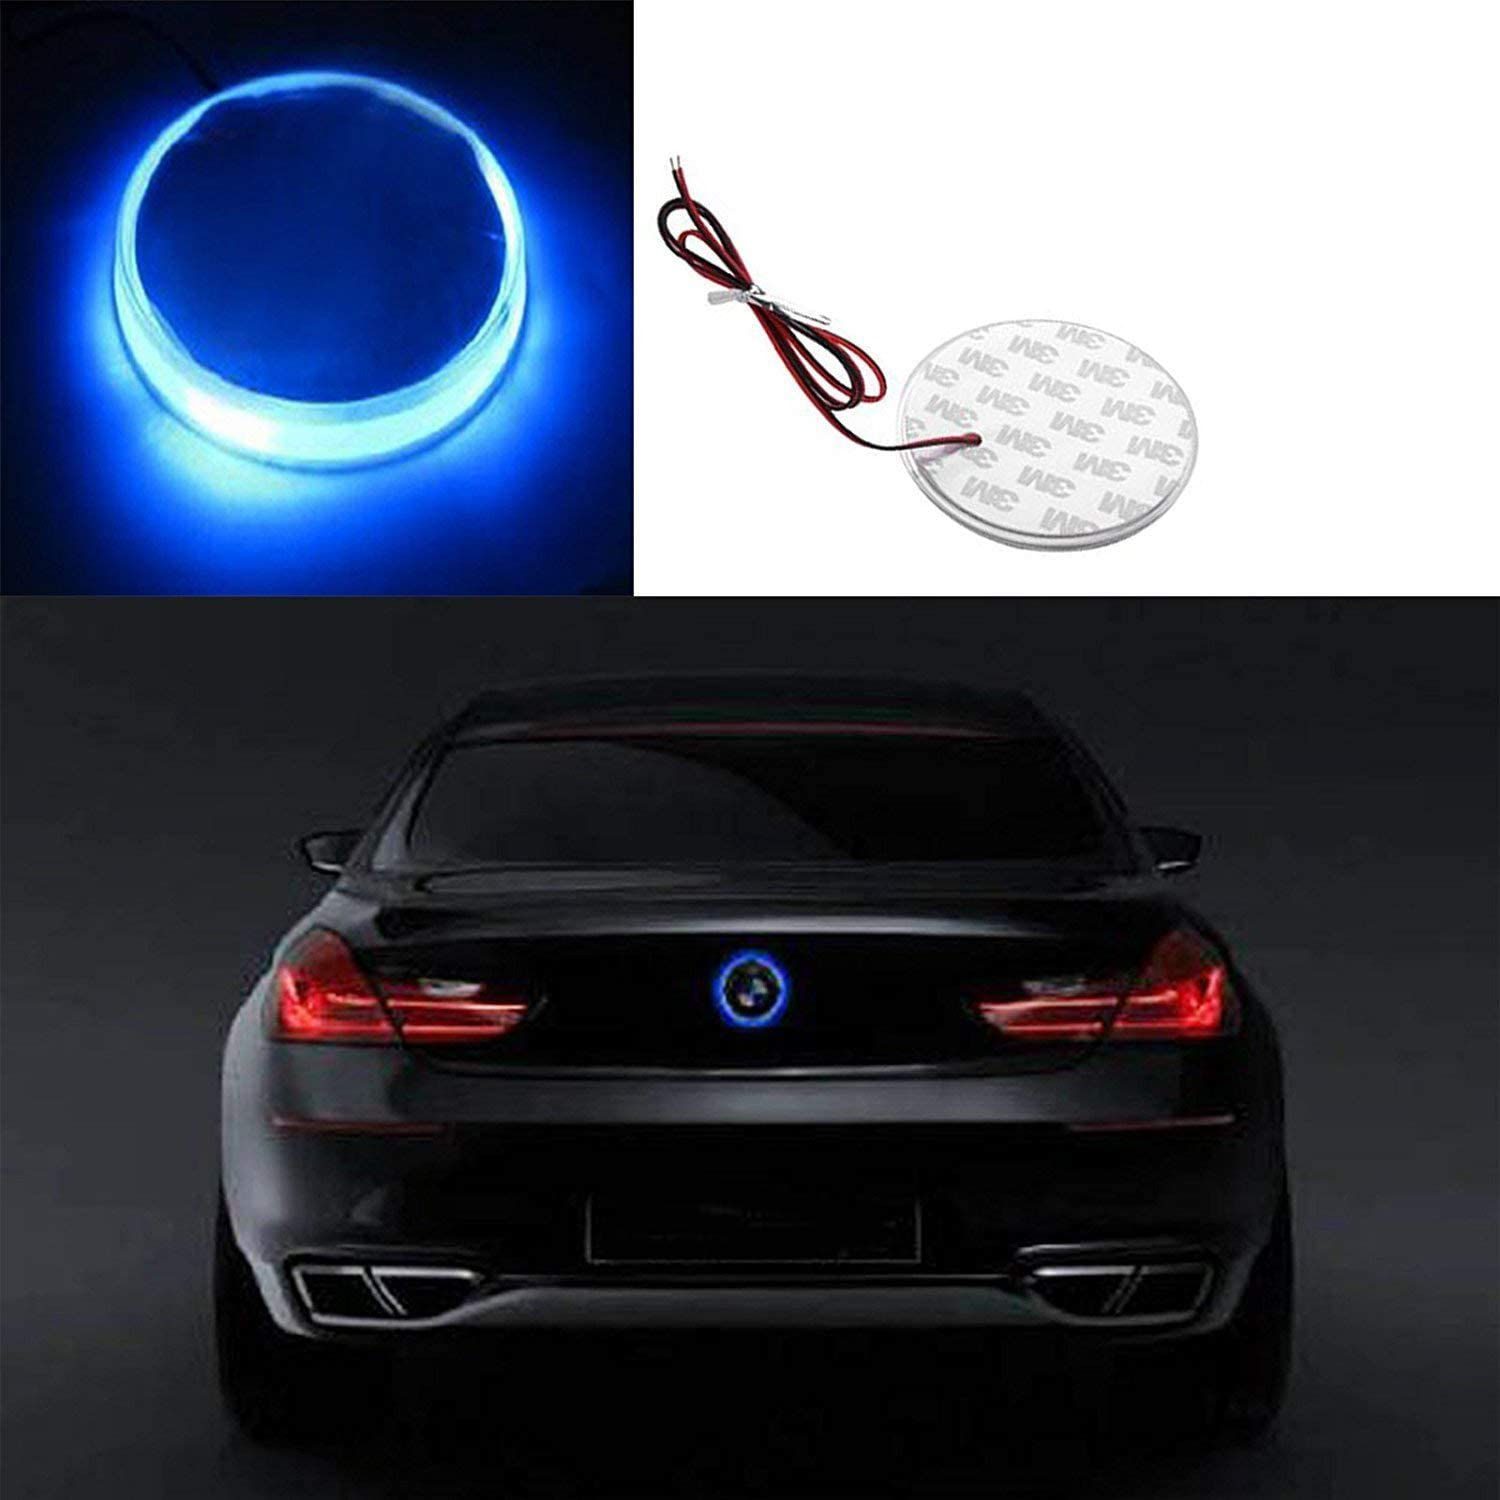 Round LED Illuminated Emblem Background Light Lighting Kit For BMW 3 4 5 6 7 X M Z Series X3 X5 X6 Xotic Tech 1x Ultra White Color 82mm Truck Hood Emblem